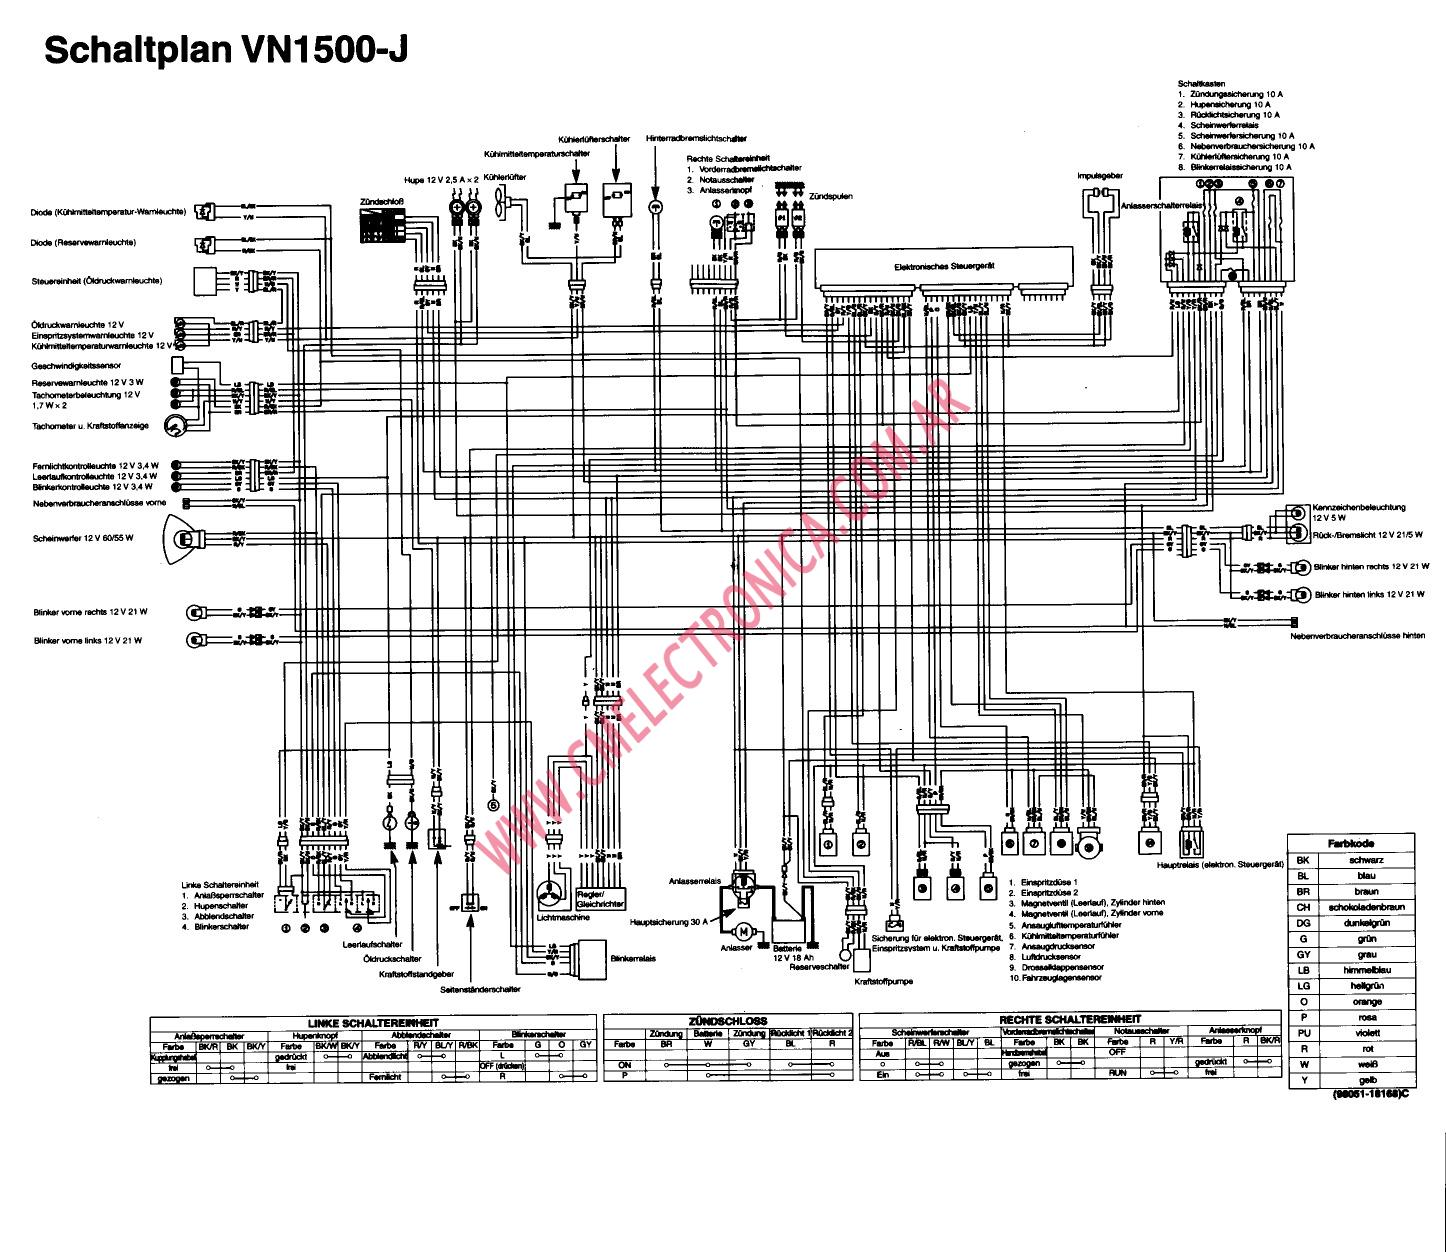 kfx 700 ignition diagram  kfx  free engine image for user